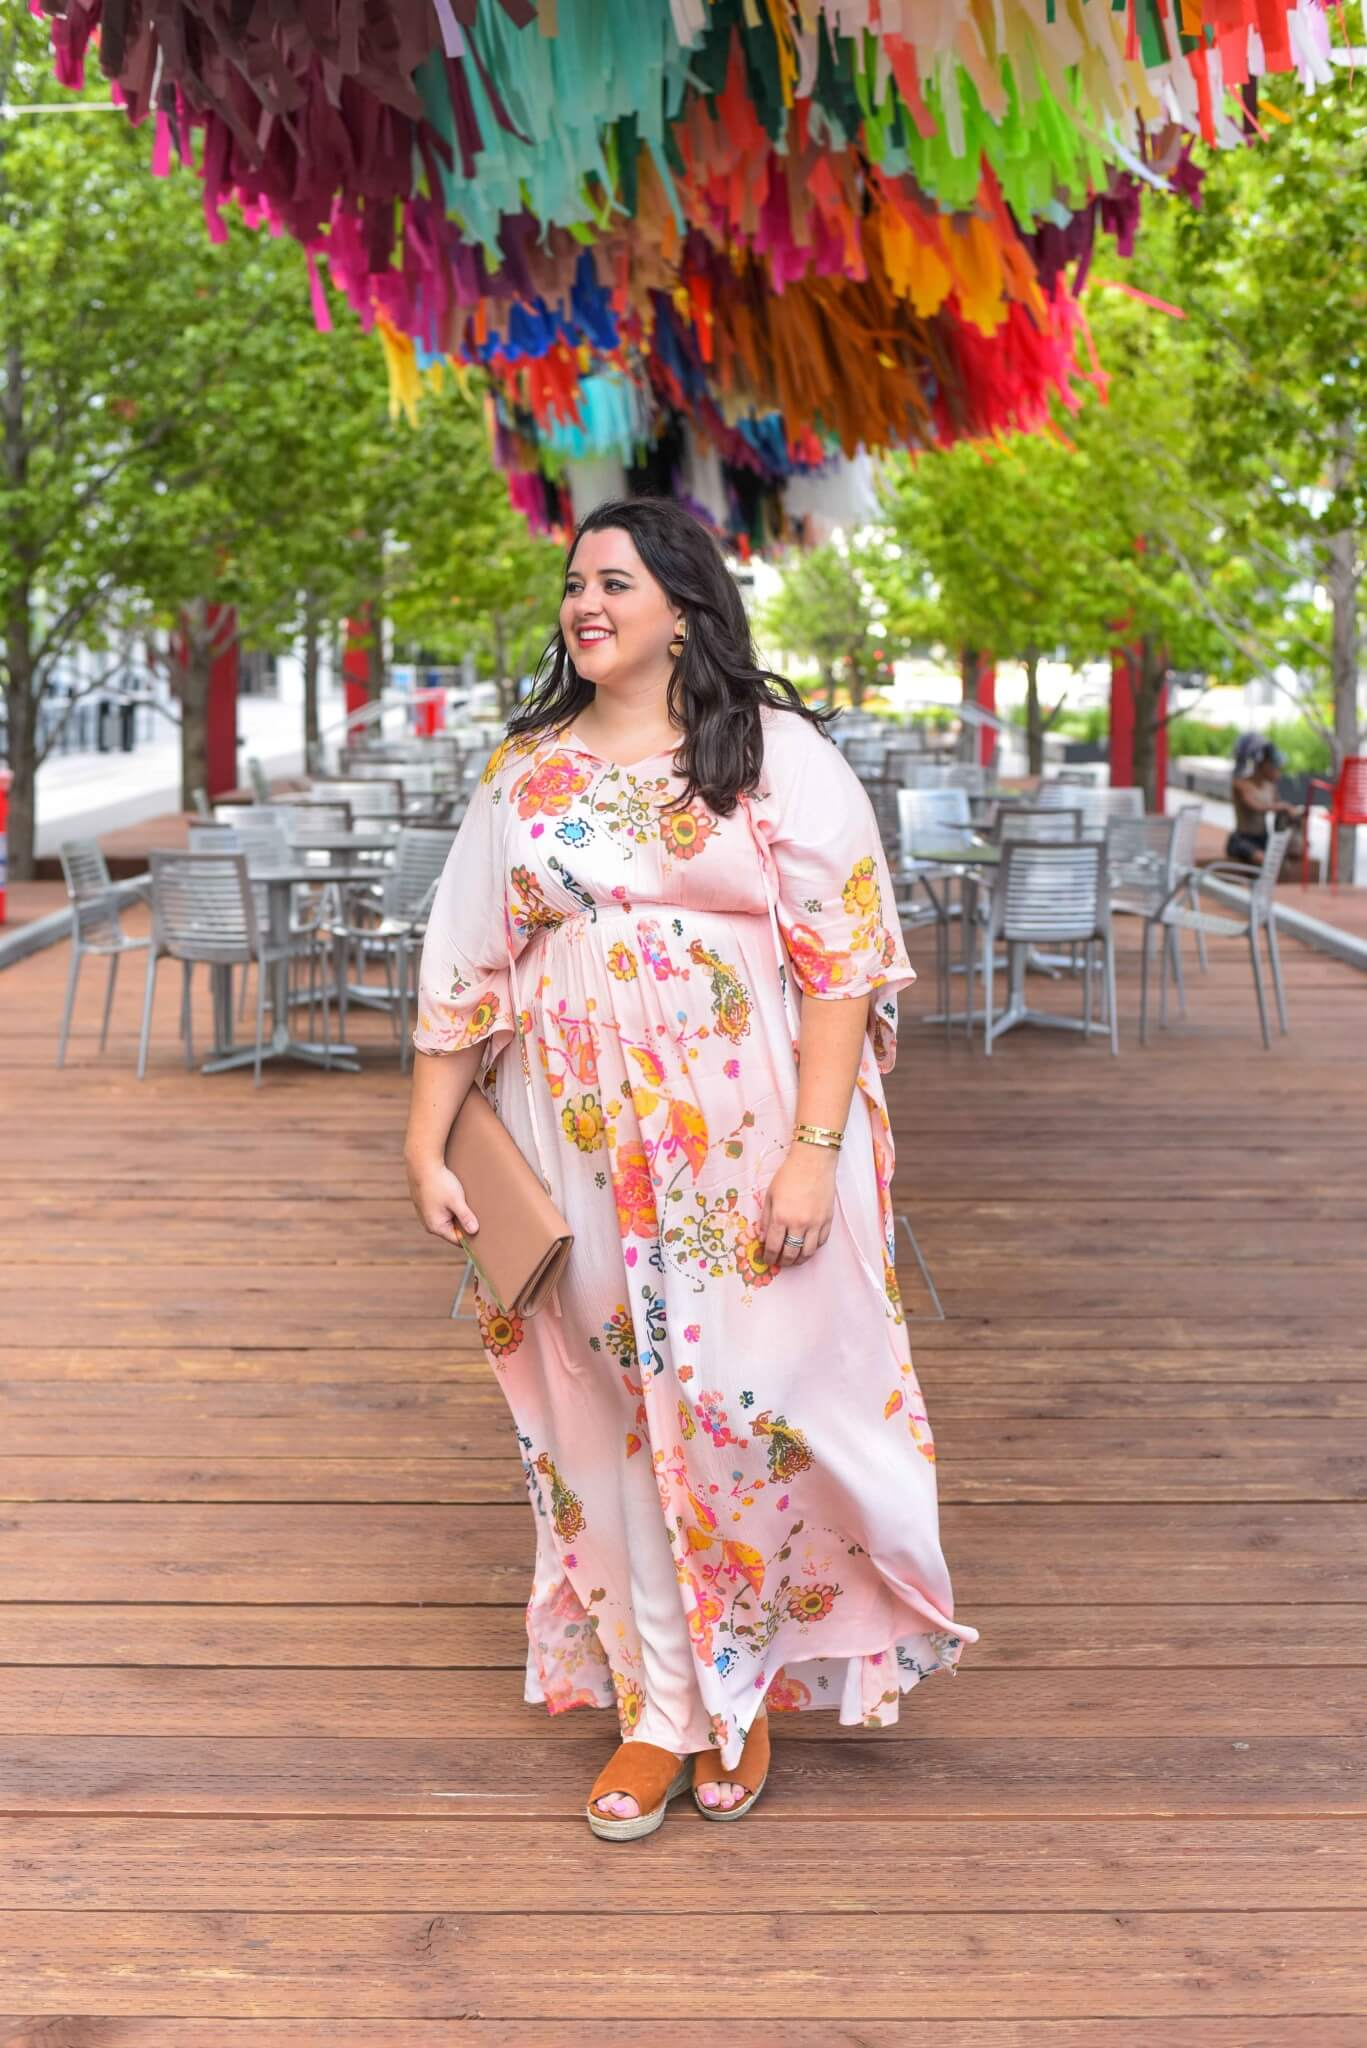 Looking for the perfect date night outfit? A beautiful printed maxi dress goes easily from day to night. #datenight #plussizefashion